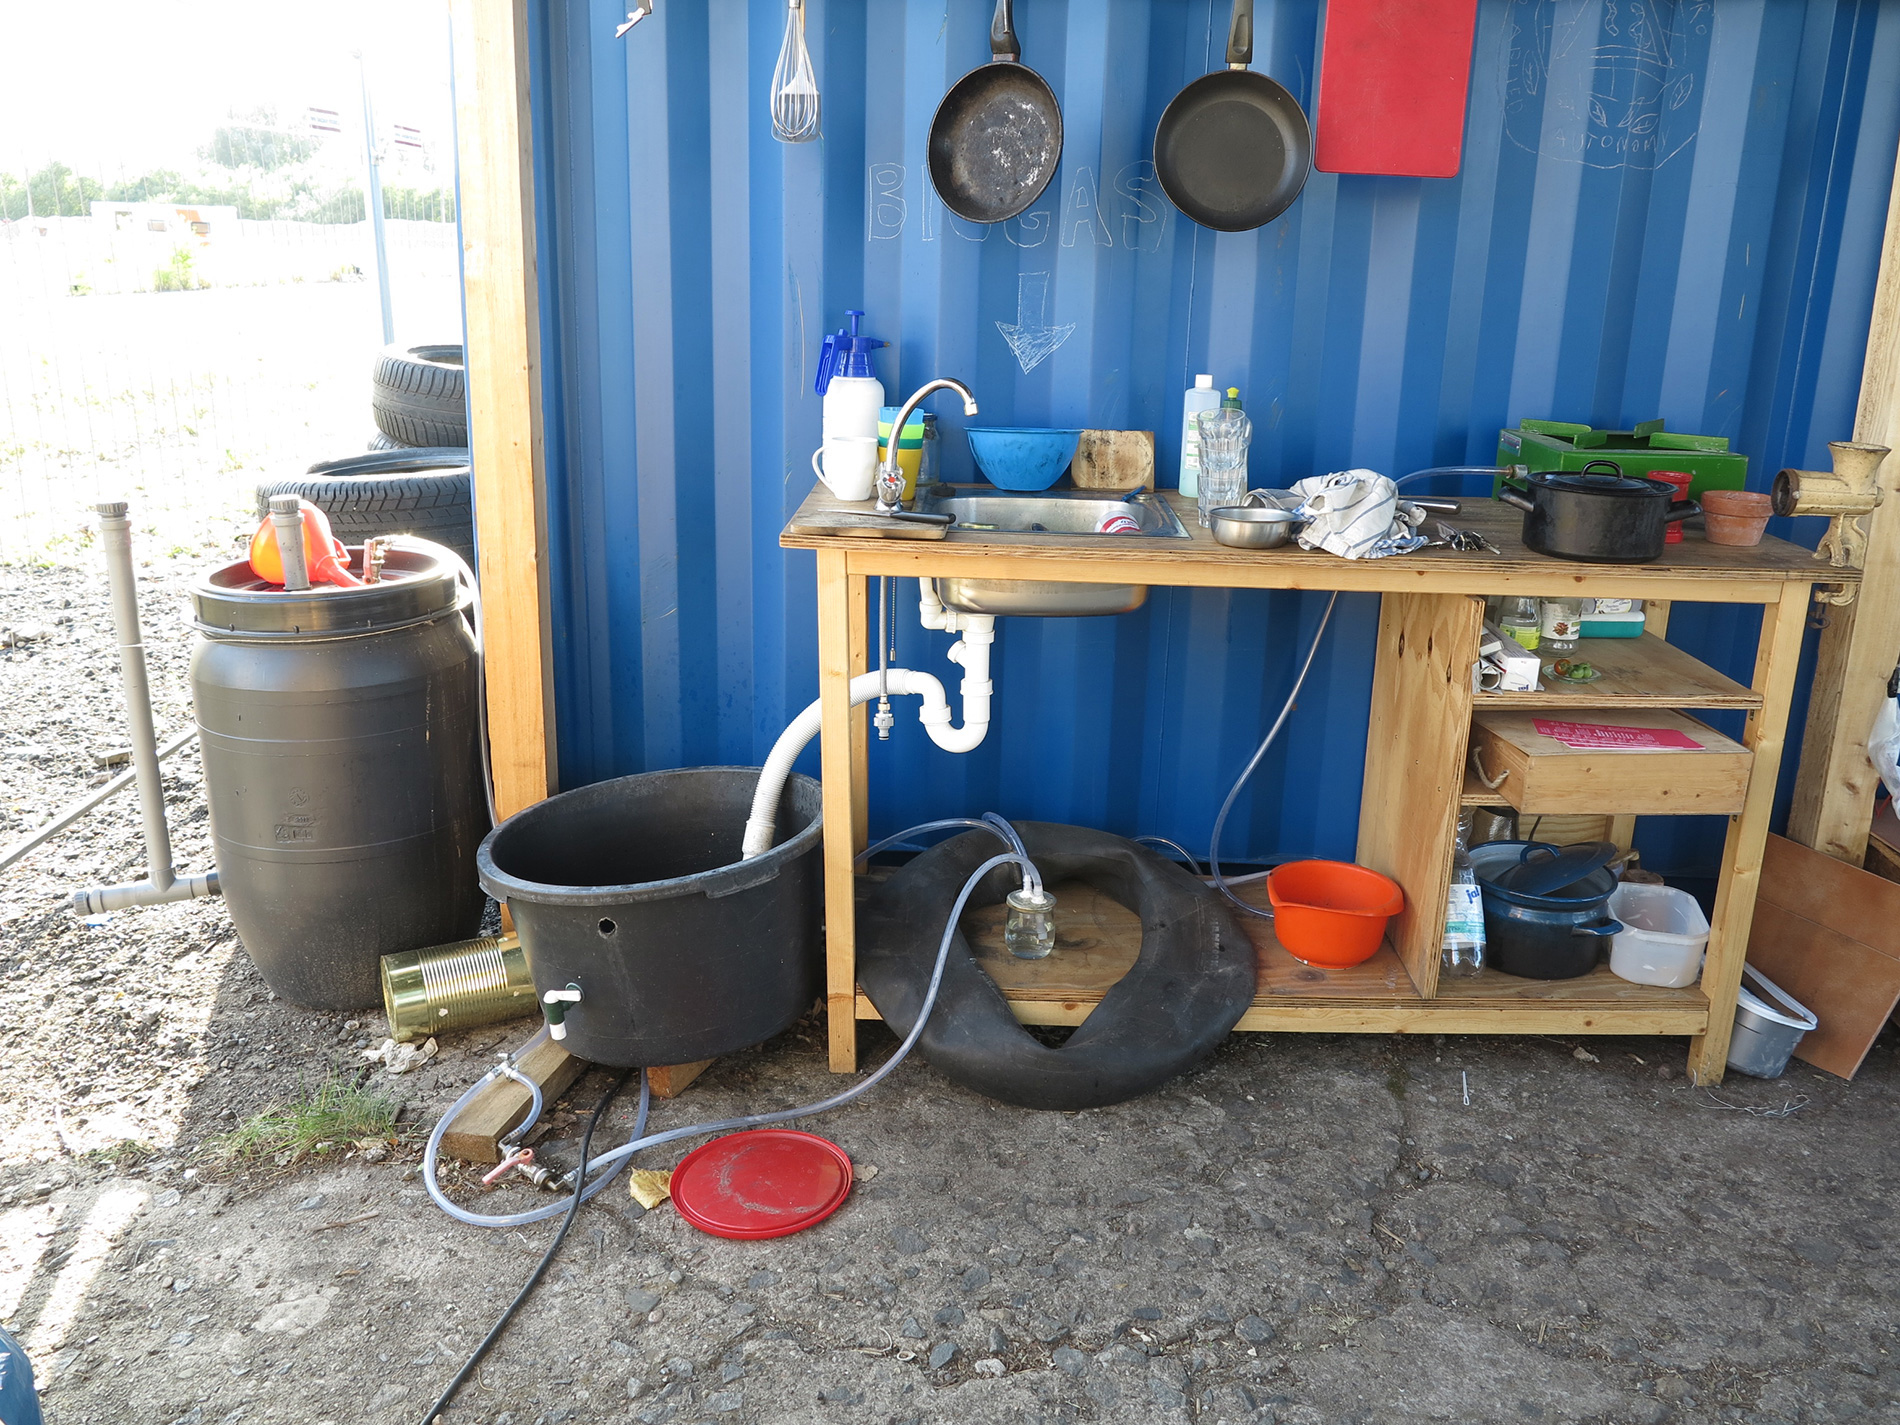 Kitchen: waste water and biogas digester